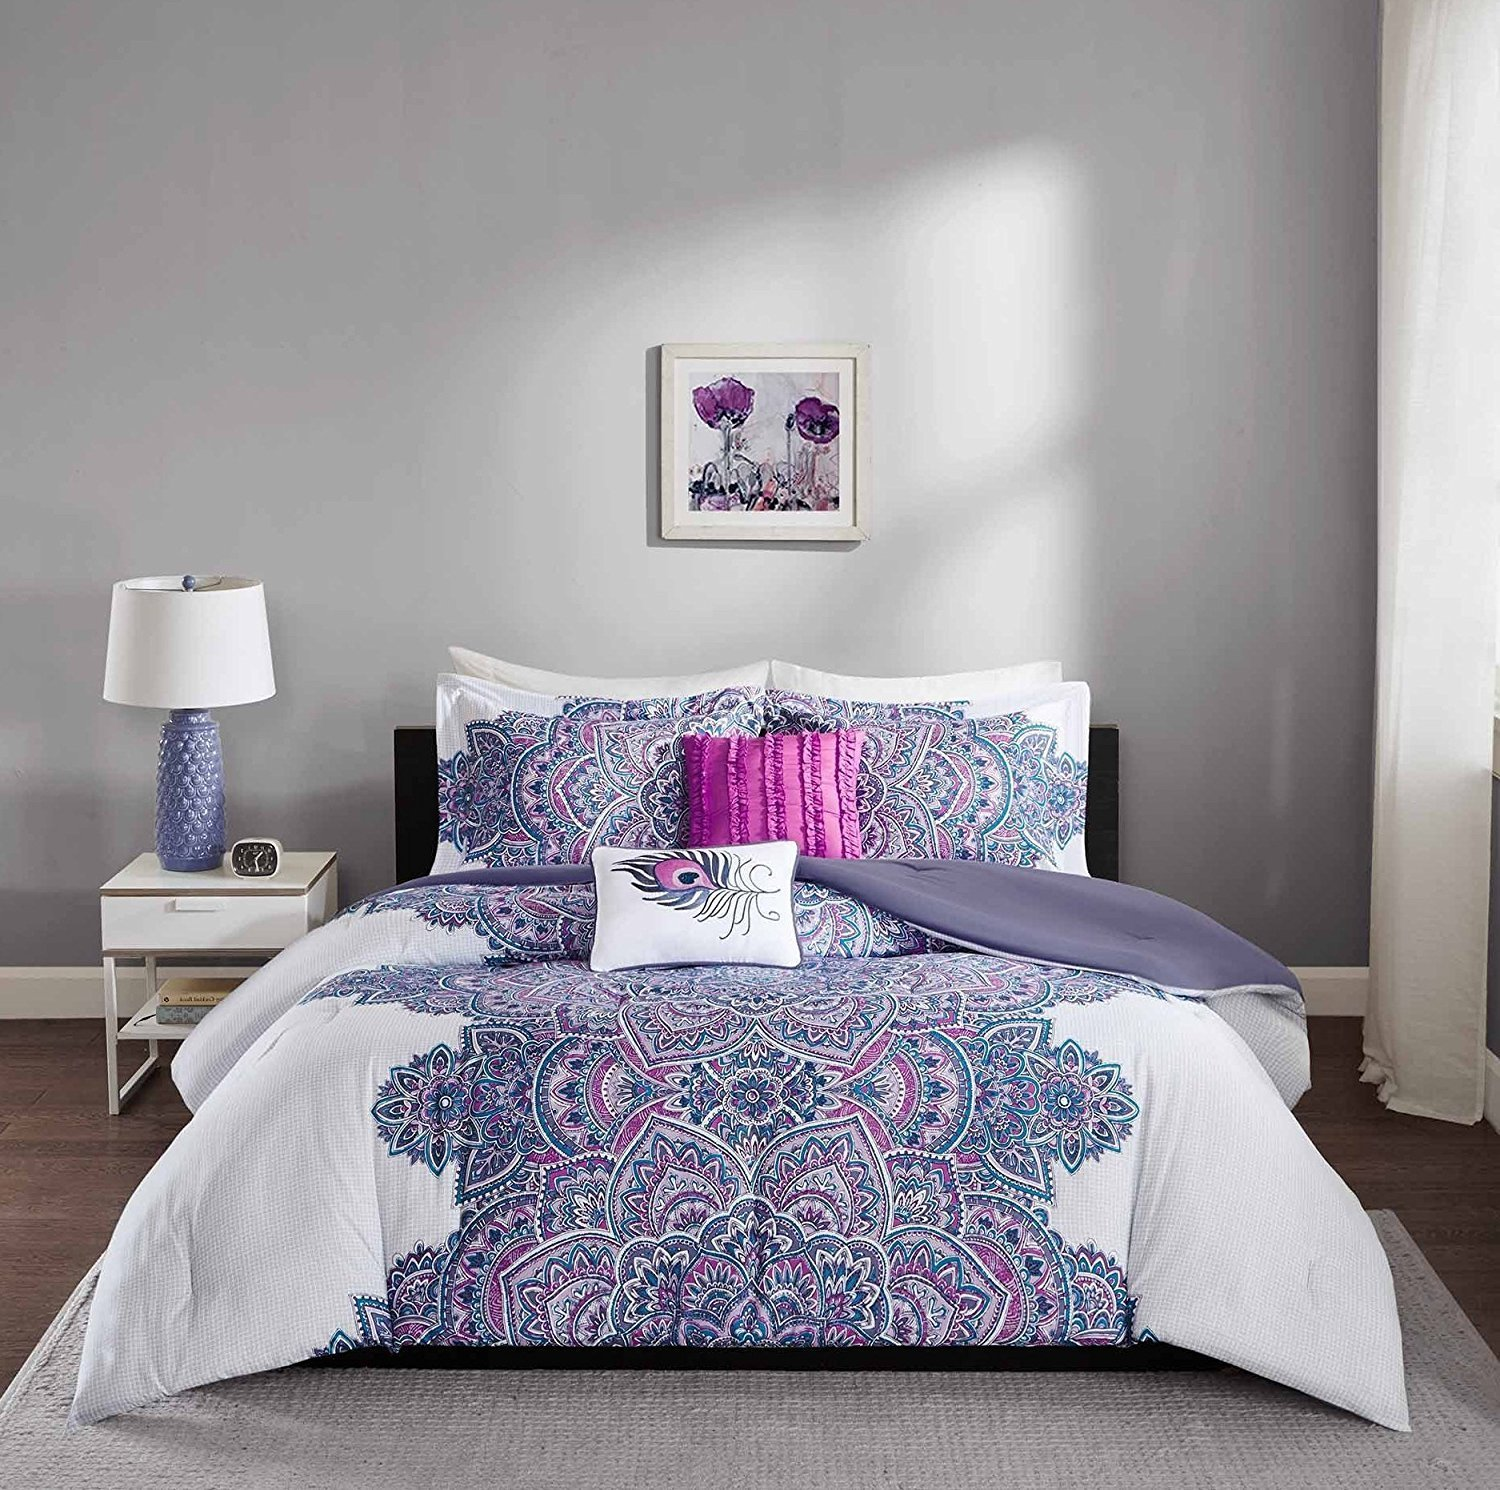 DOS 5pc Girls Medallion Floral Comforter Full Queen Set, Abstract Geometric Flowers Pattern, Mandala Motif Bedding, Pretty Flower Bohemian Boho Chic Themed, White Blue Purple